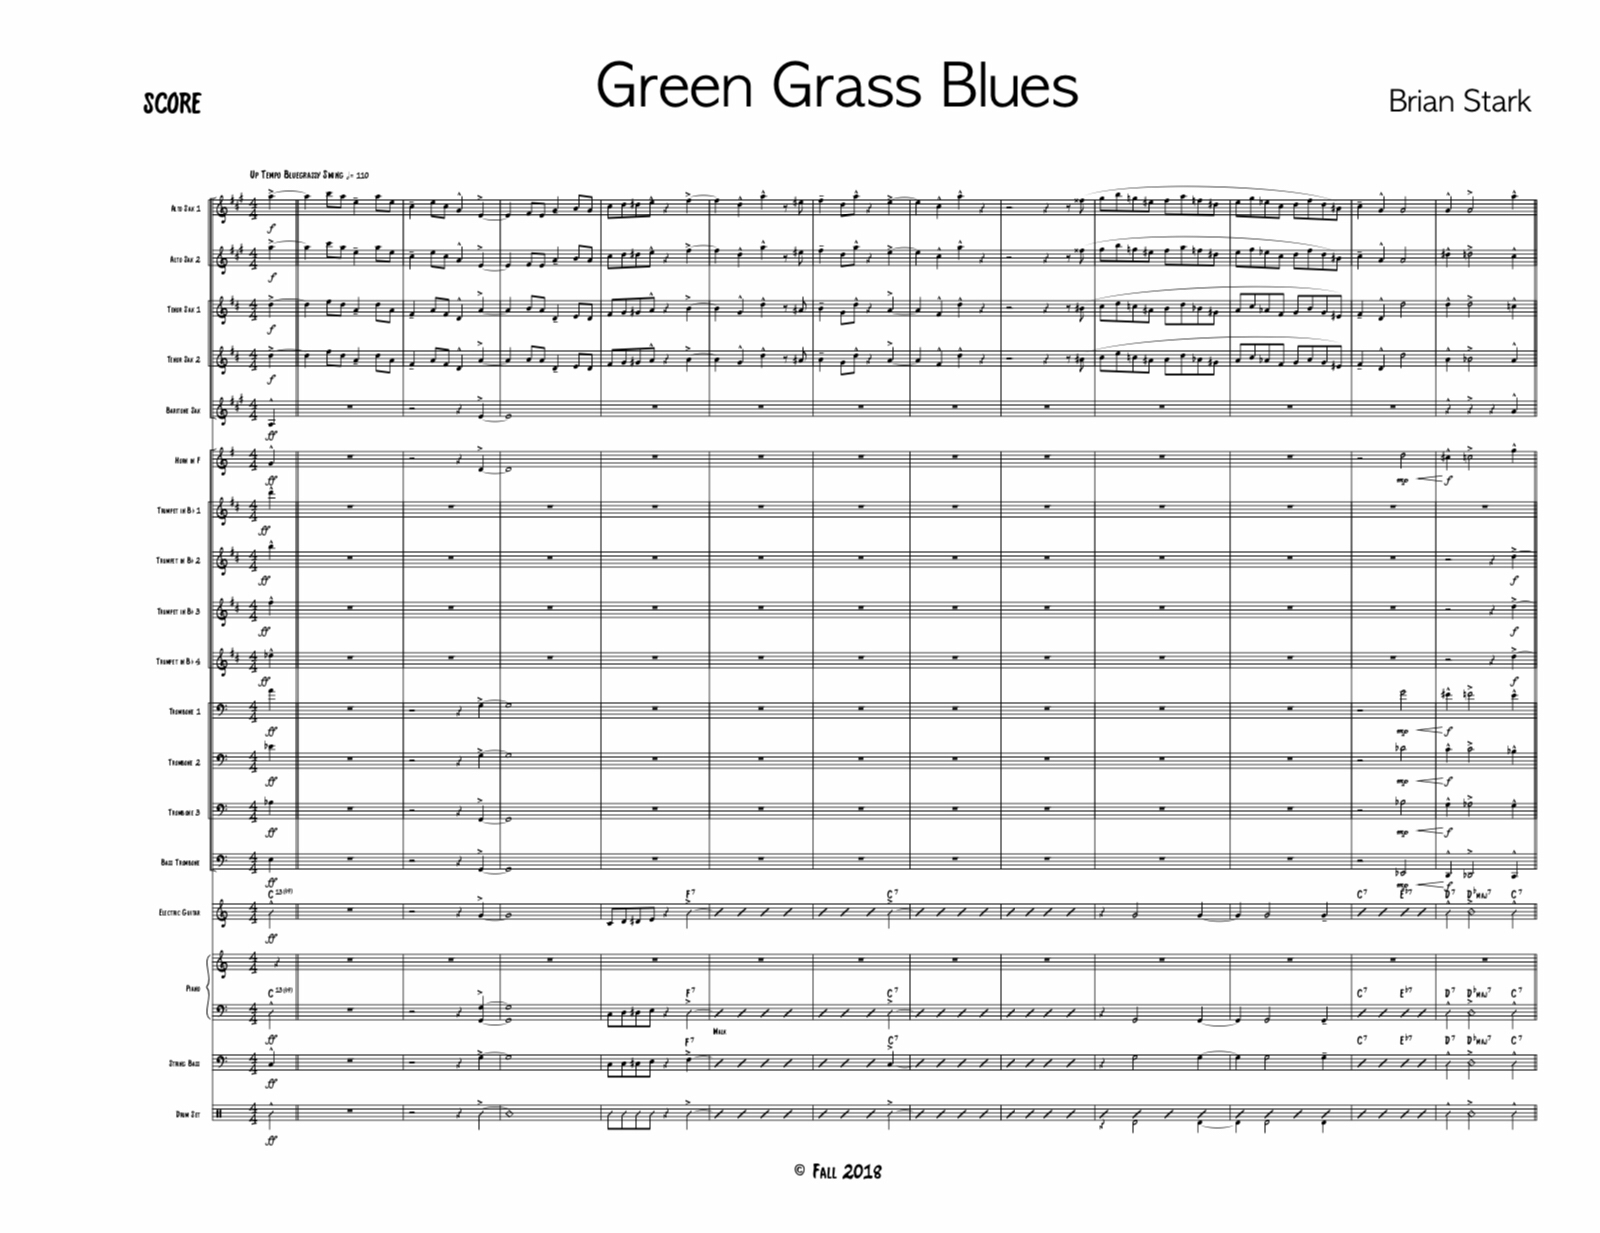 Green Grass Blues by Brian Stark